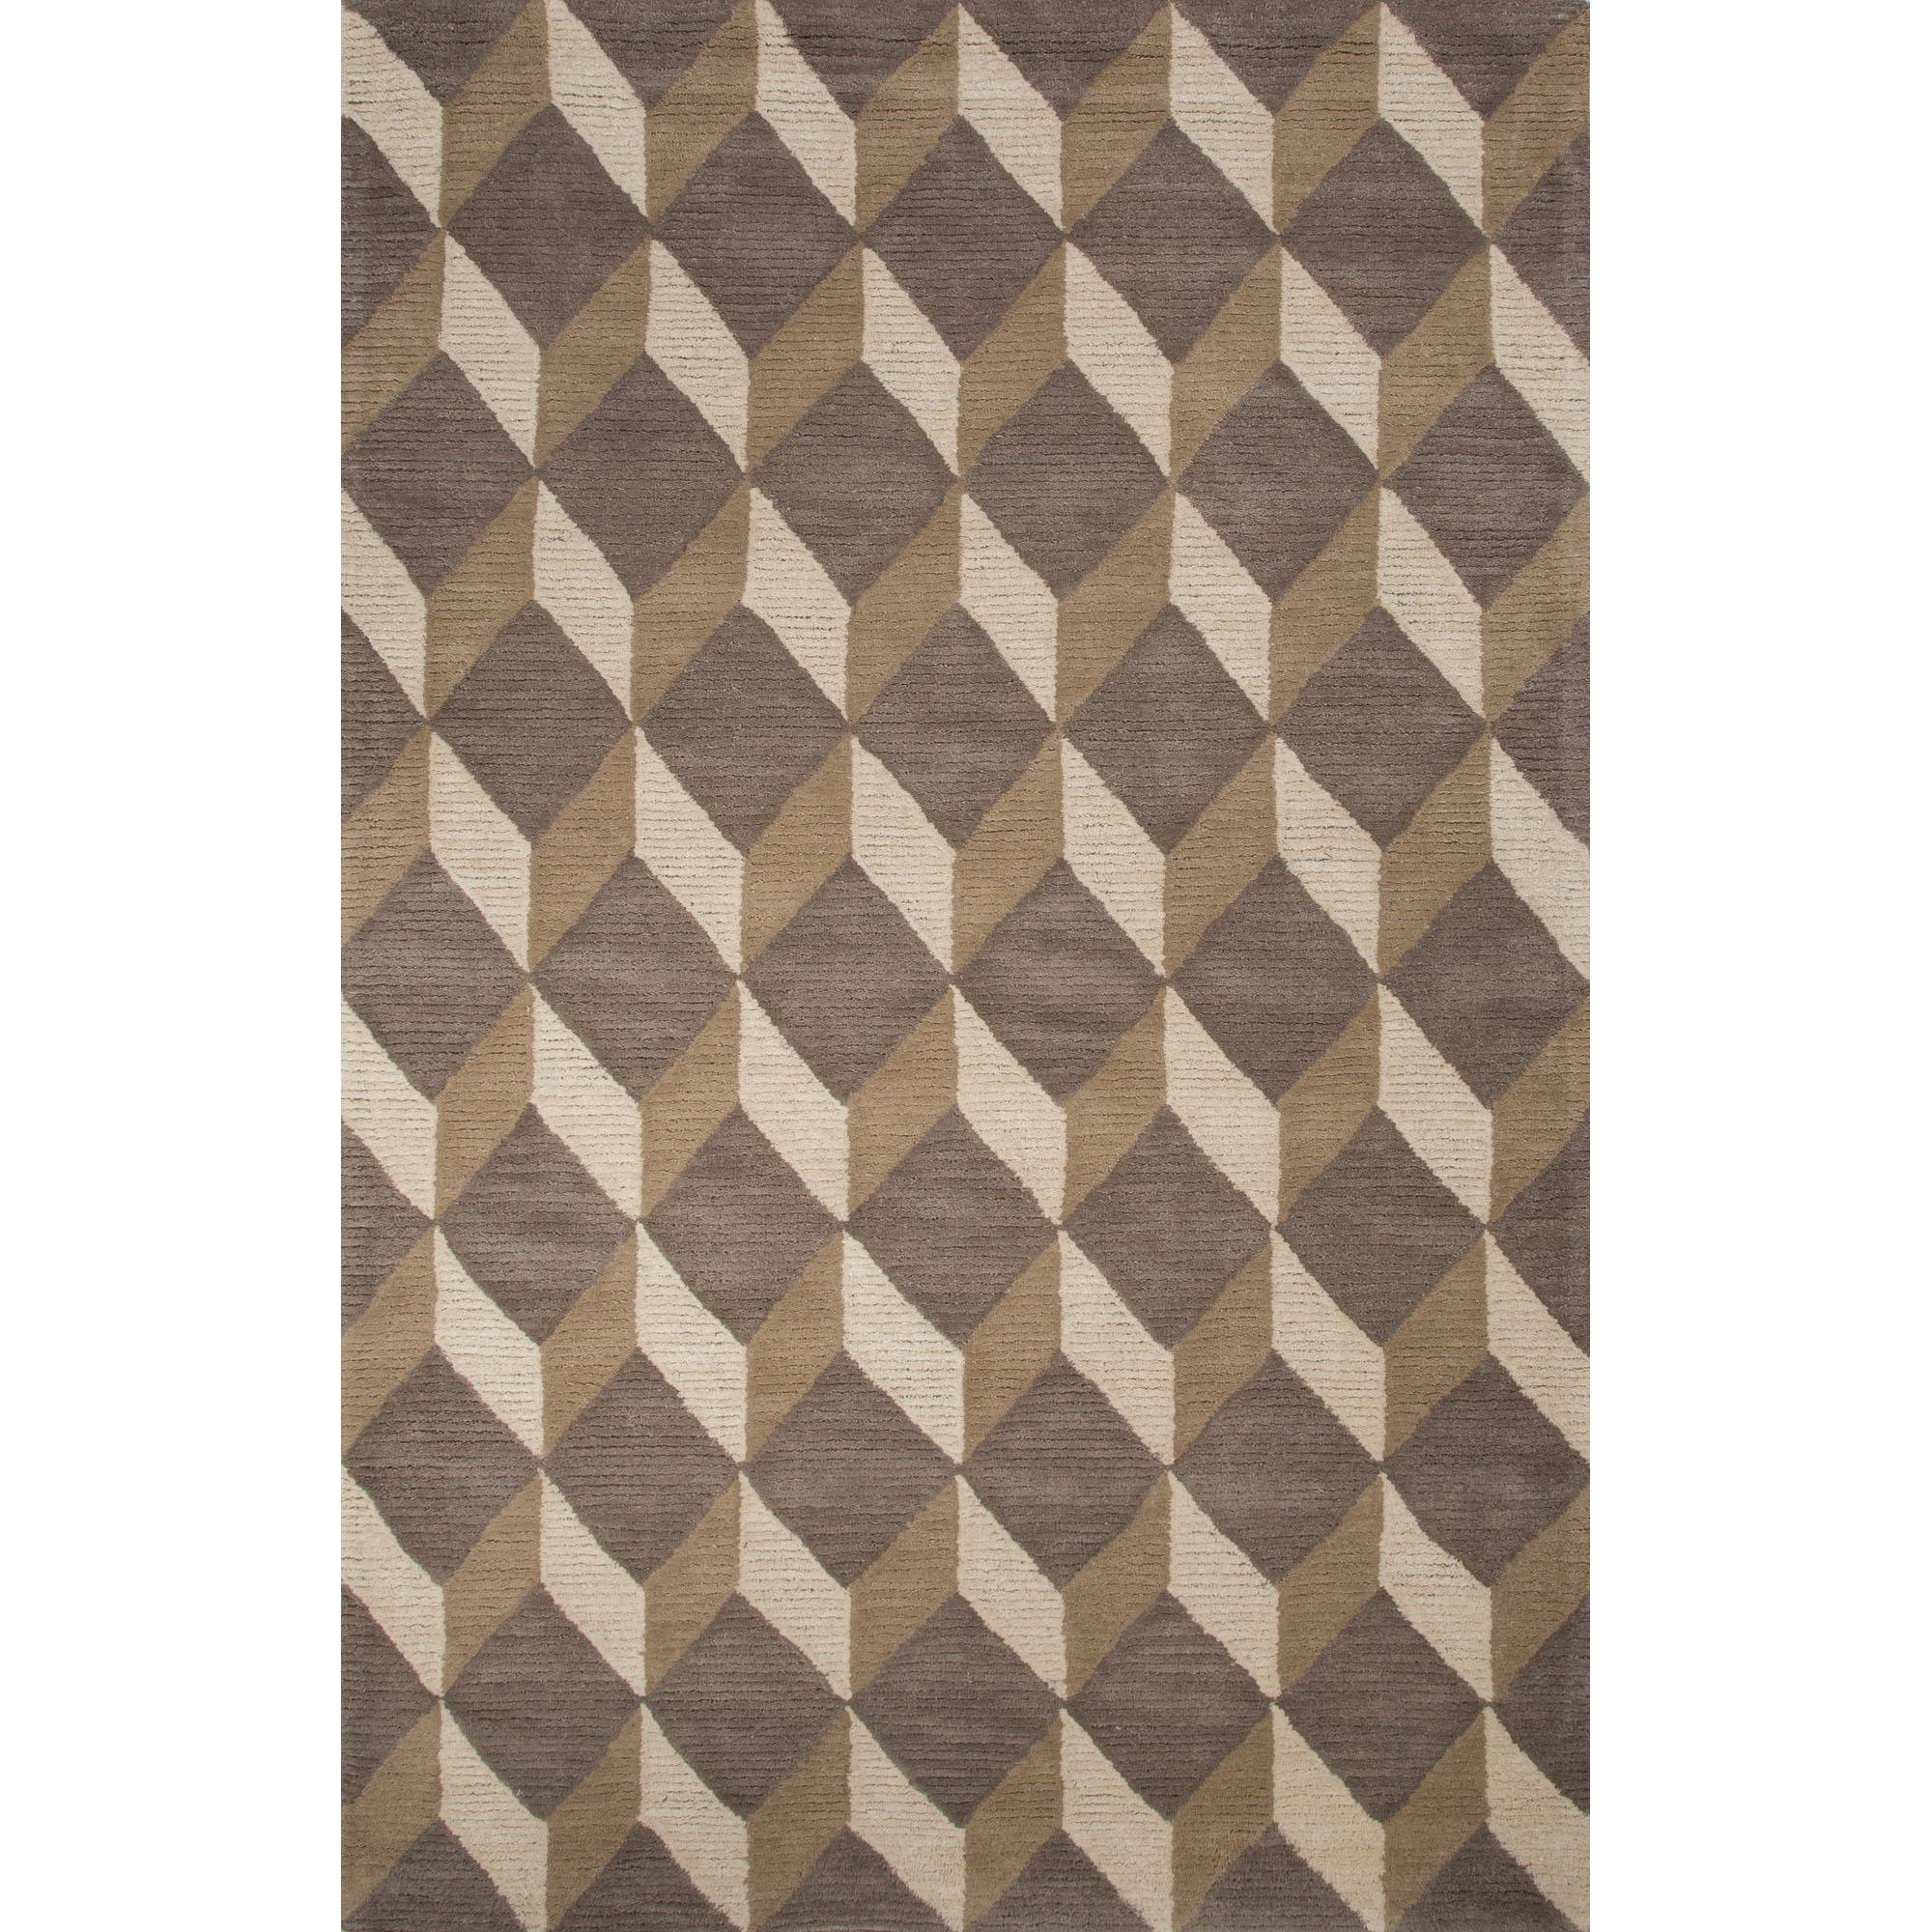 JAIPUR Rugs Bristol By Rug Republic 5 x 8 Rug - Item Number: RUG123087